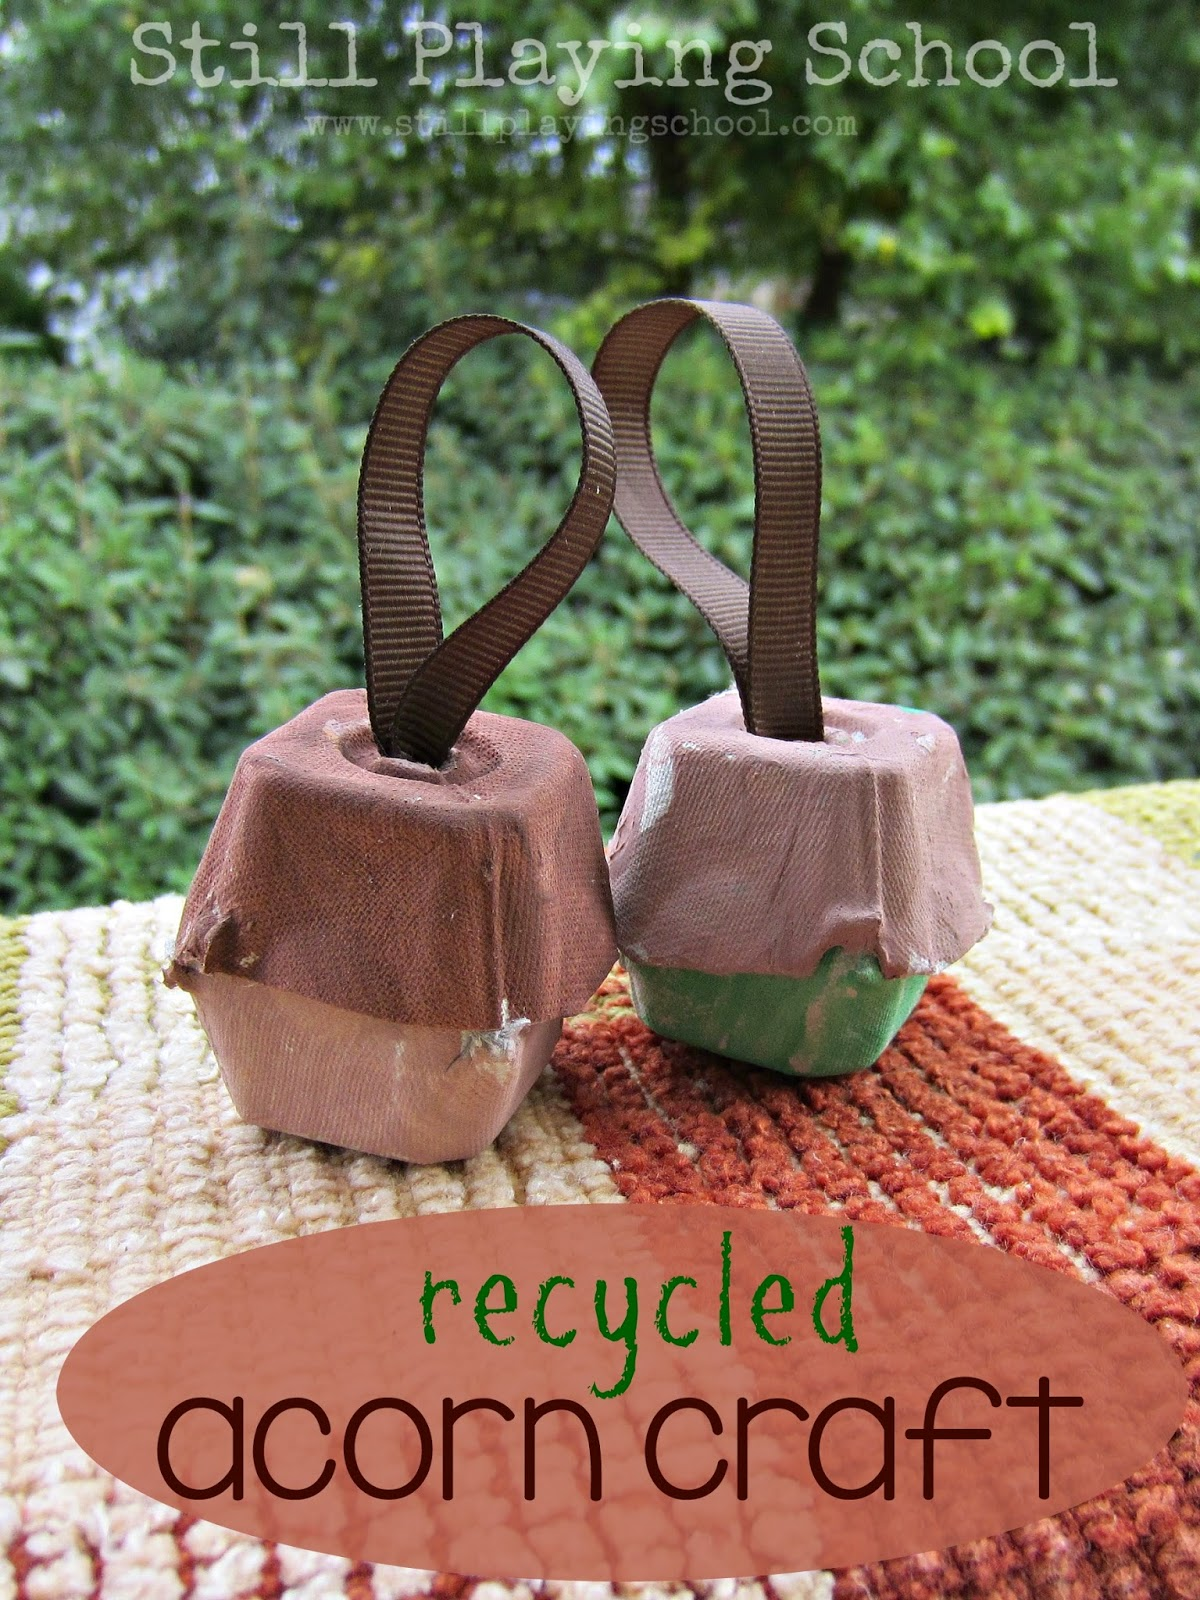 These simple acorns are created by  Still Playing School  by cutting and painting repurposed egg cartons.